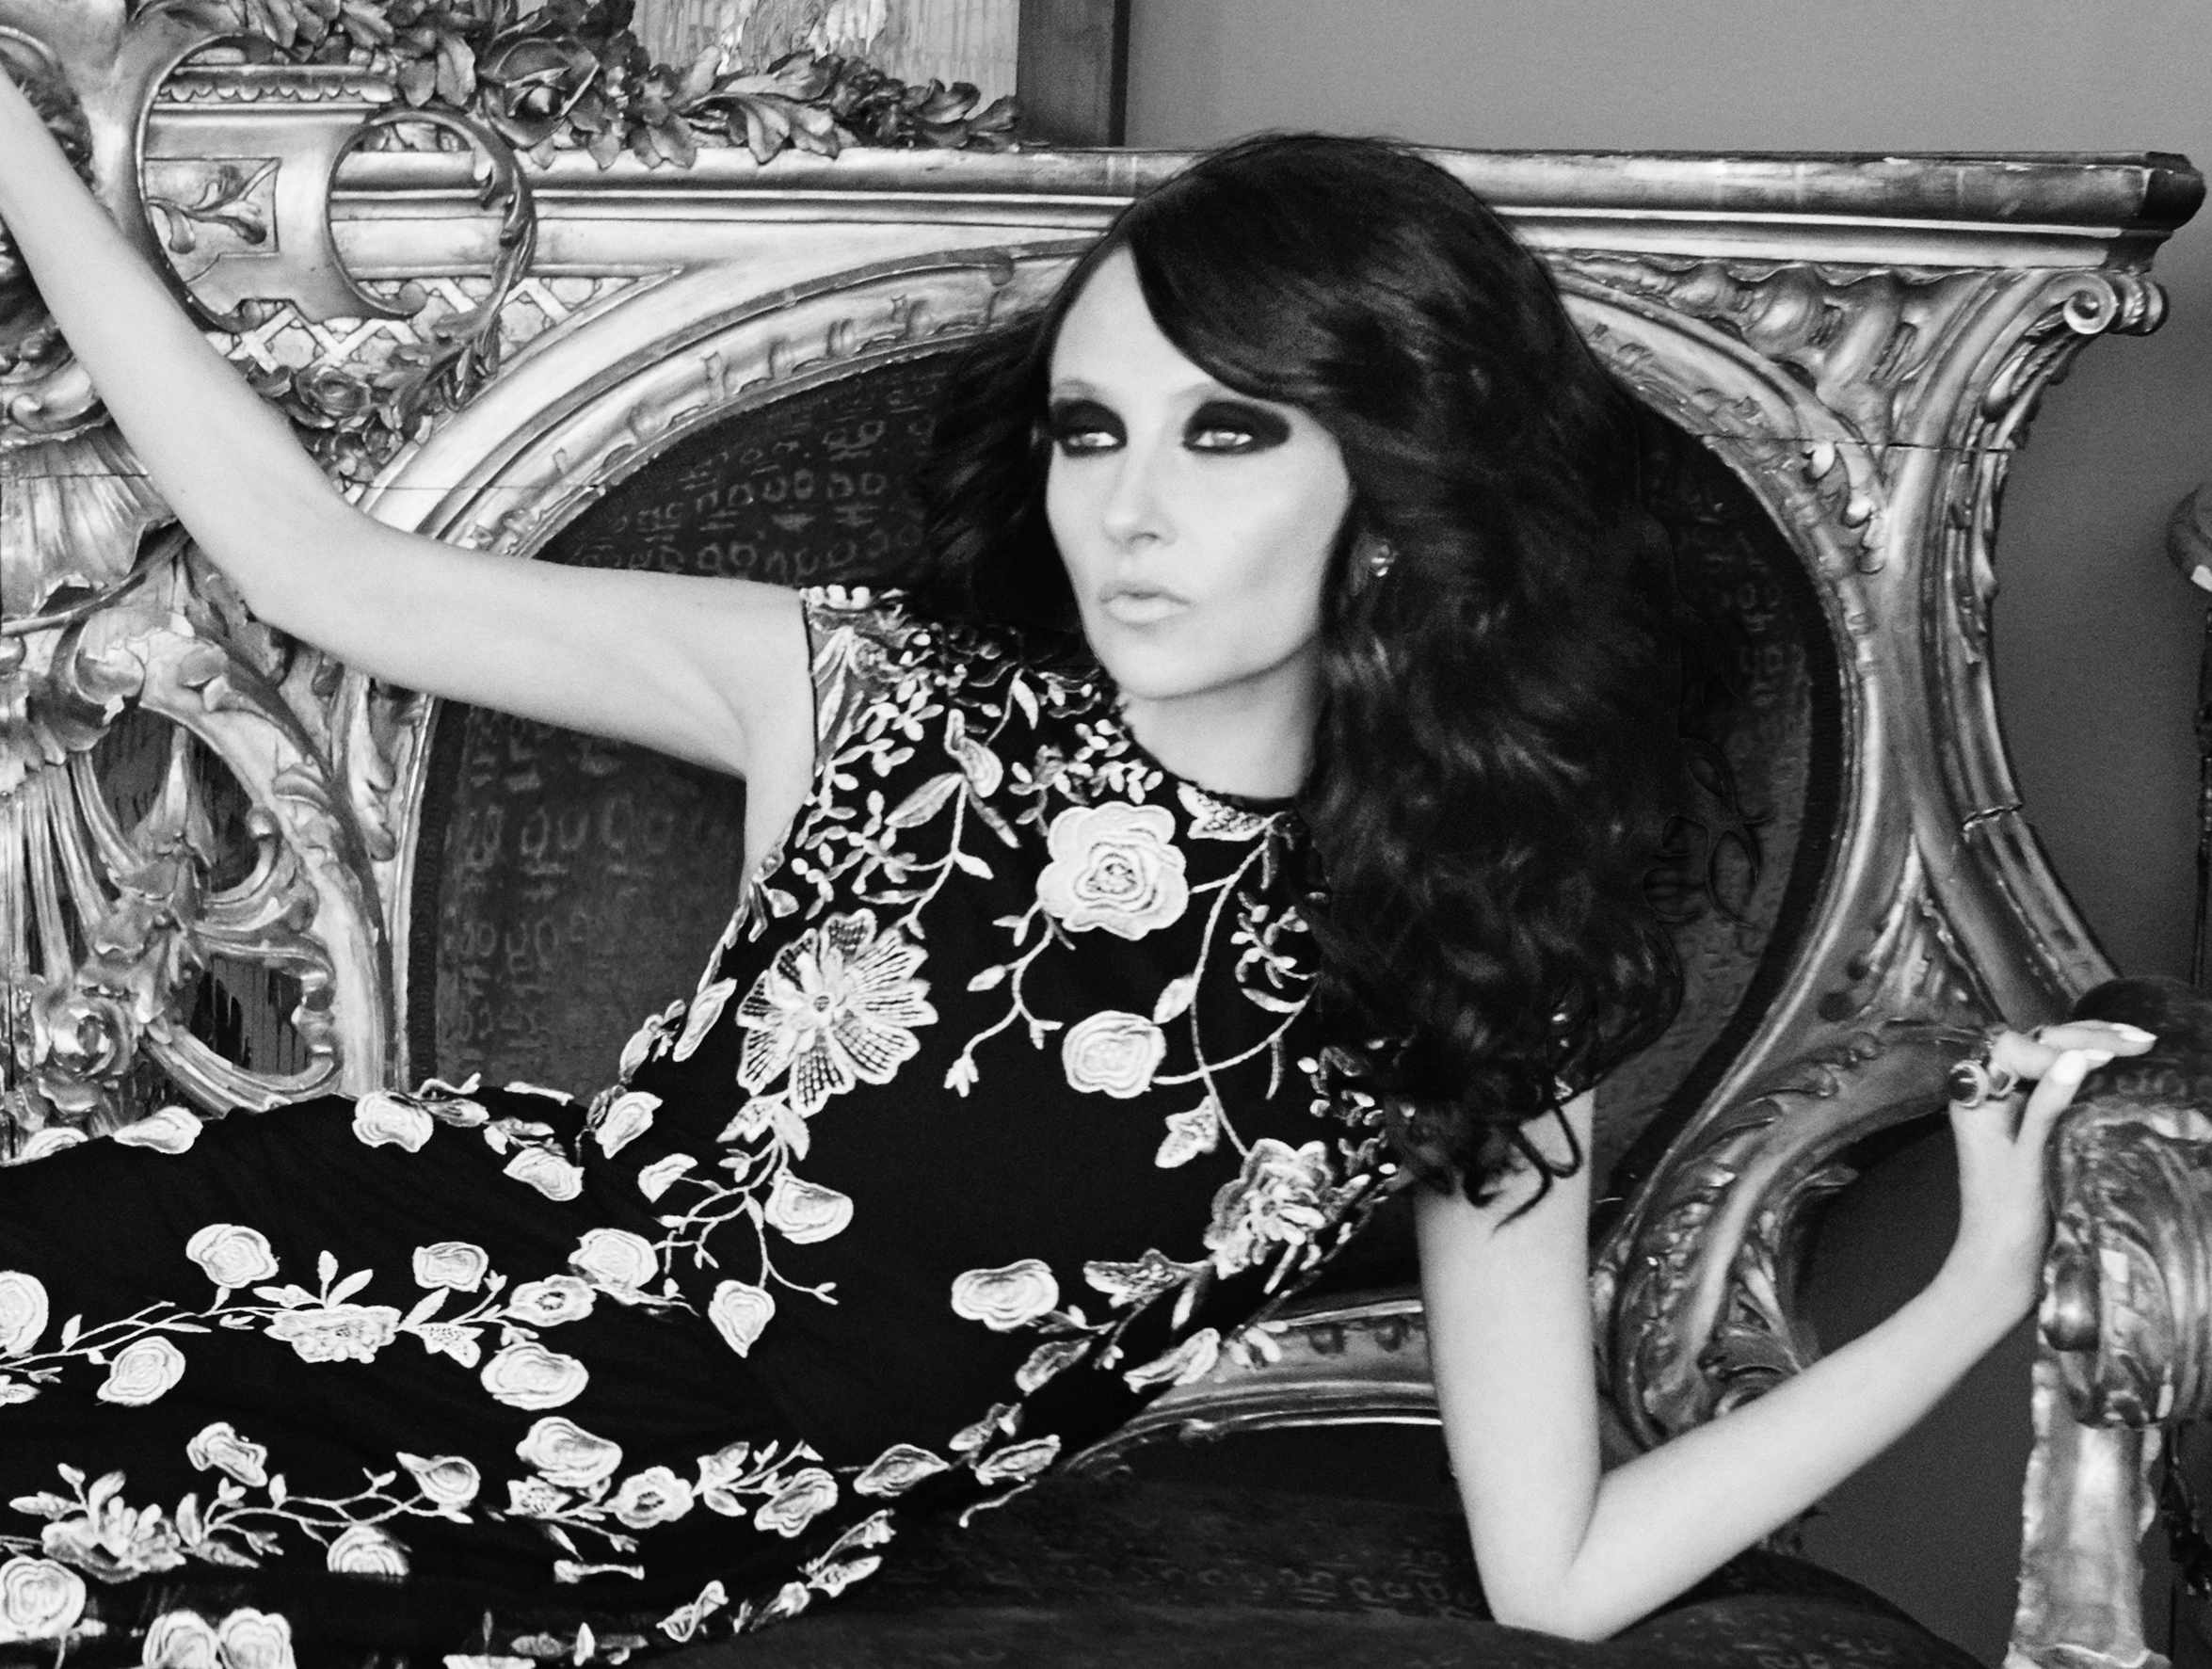 Designer Stacey Bendet launched alice + olivia in 2002 in search of creating the perfect pair of pants.